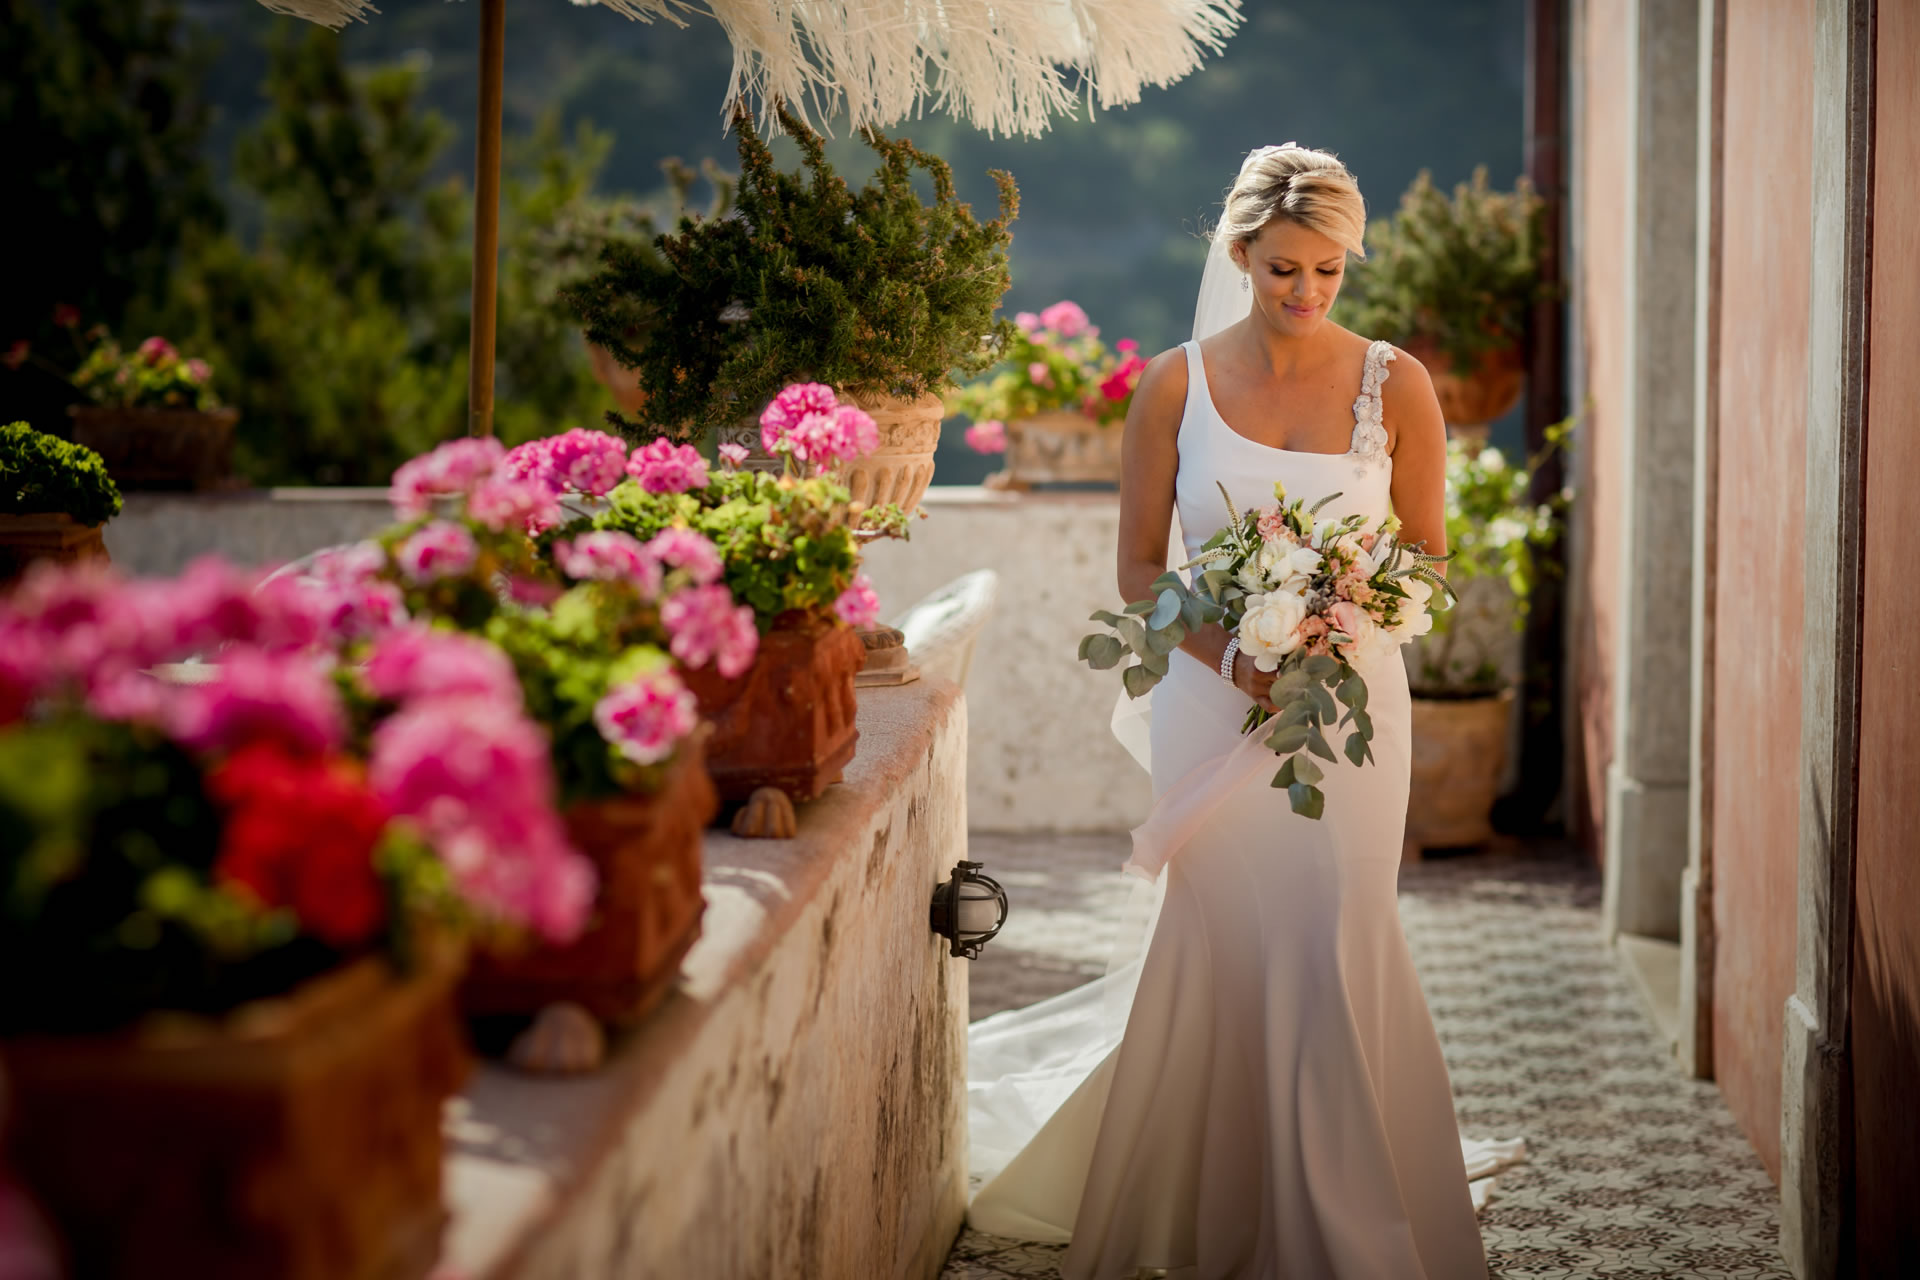 Arrival - 22 :: Wedding in Positano. Sea and love :: Luxury wedding photography - 21 :: Arrival - 22